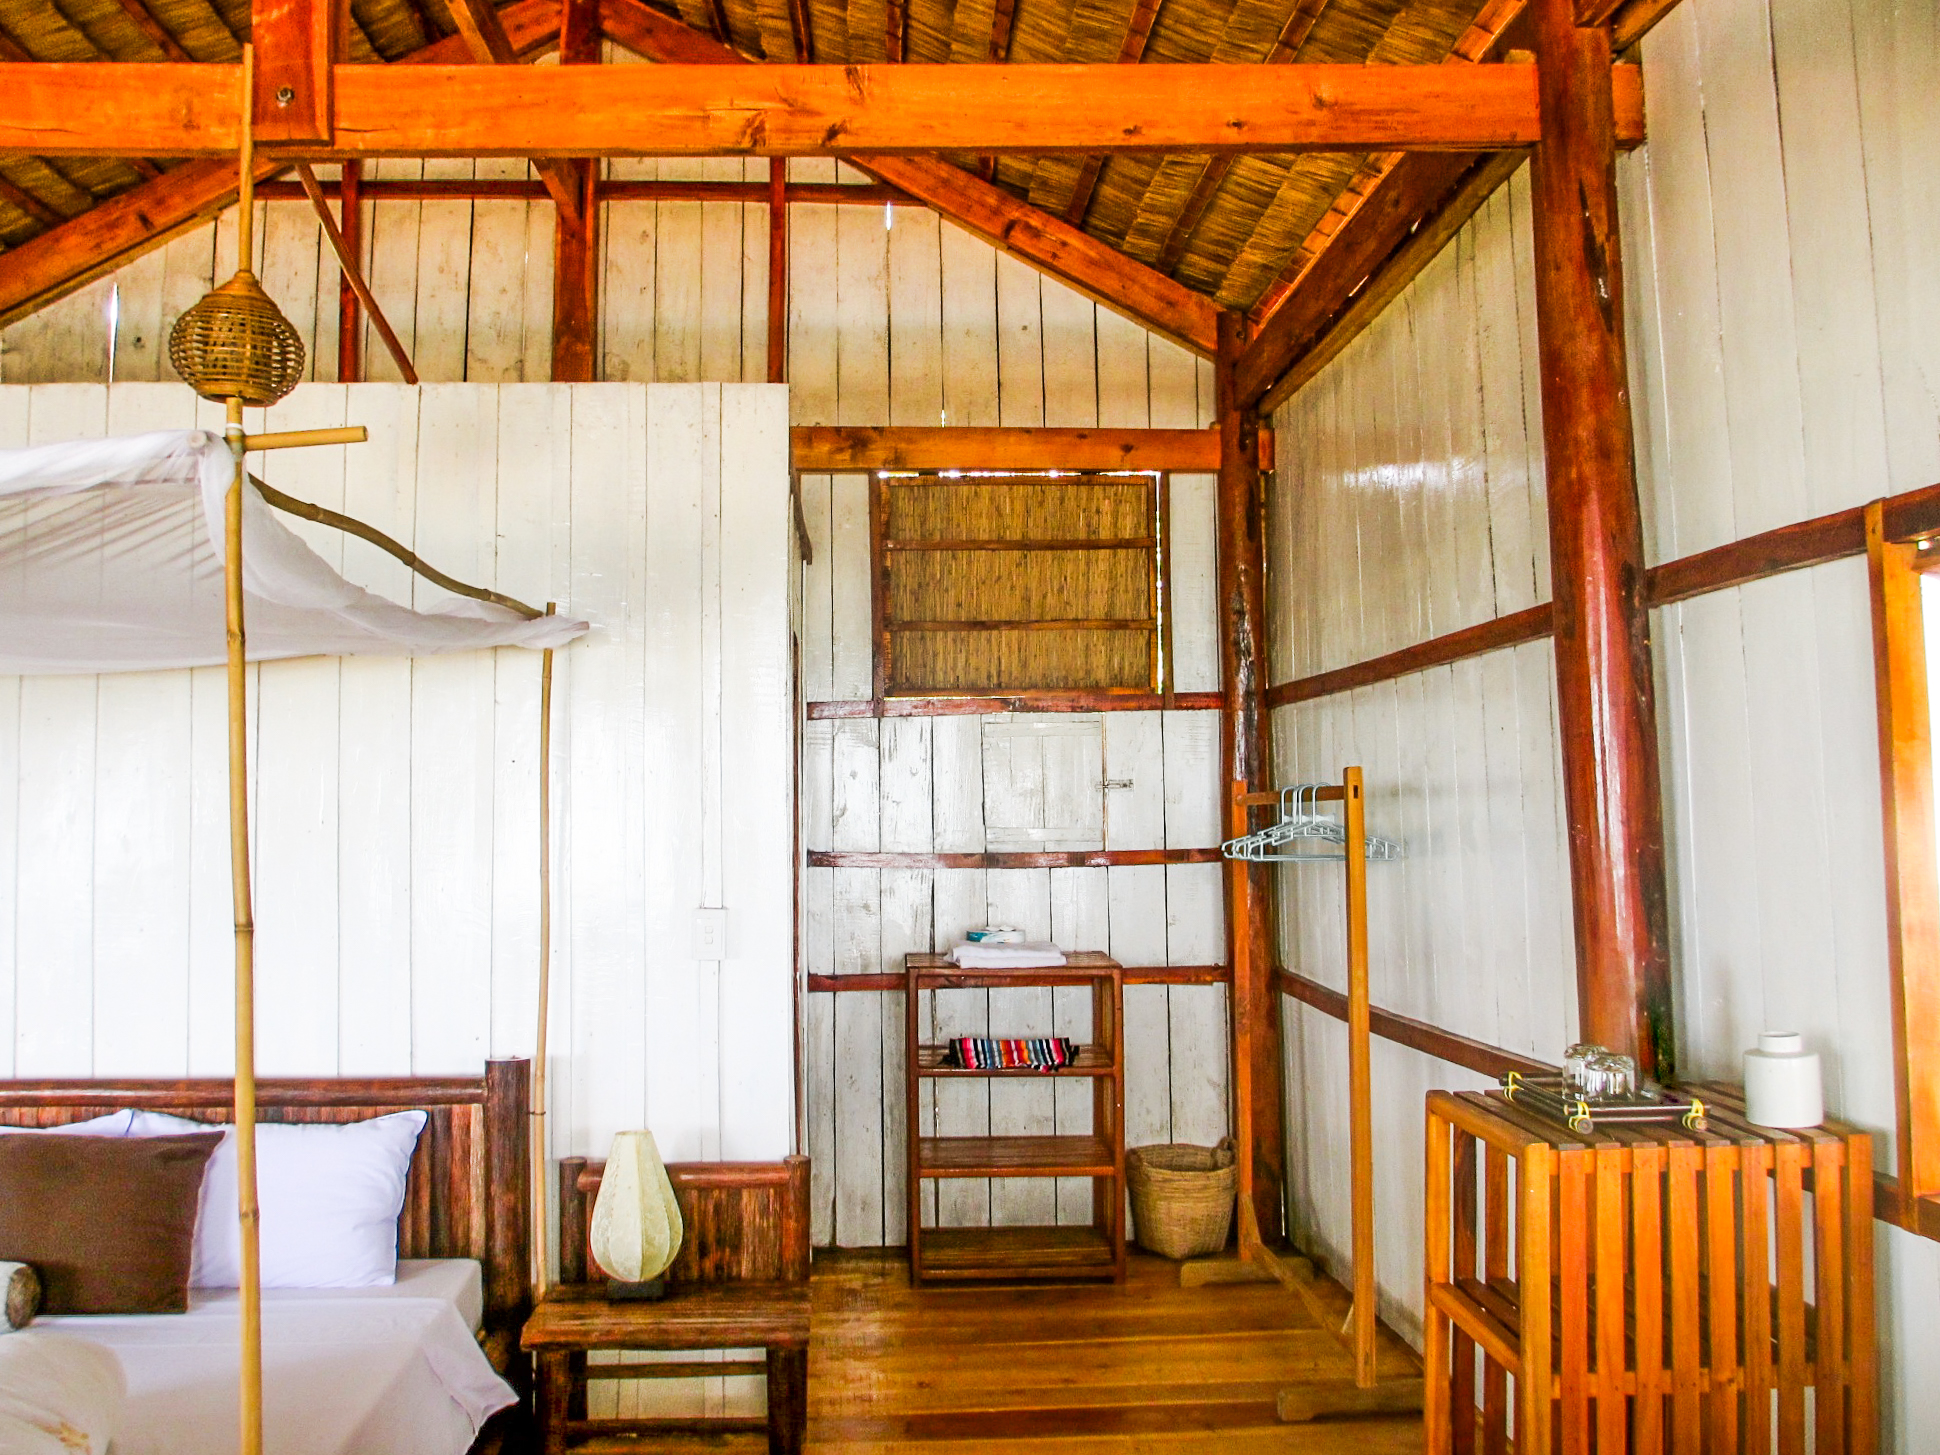 phuo-quoc-bamboo-cottage-6.jpg